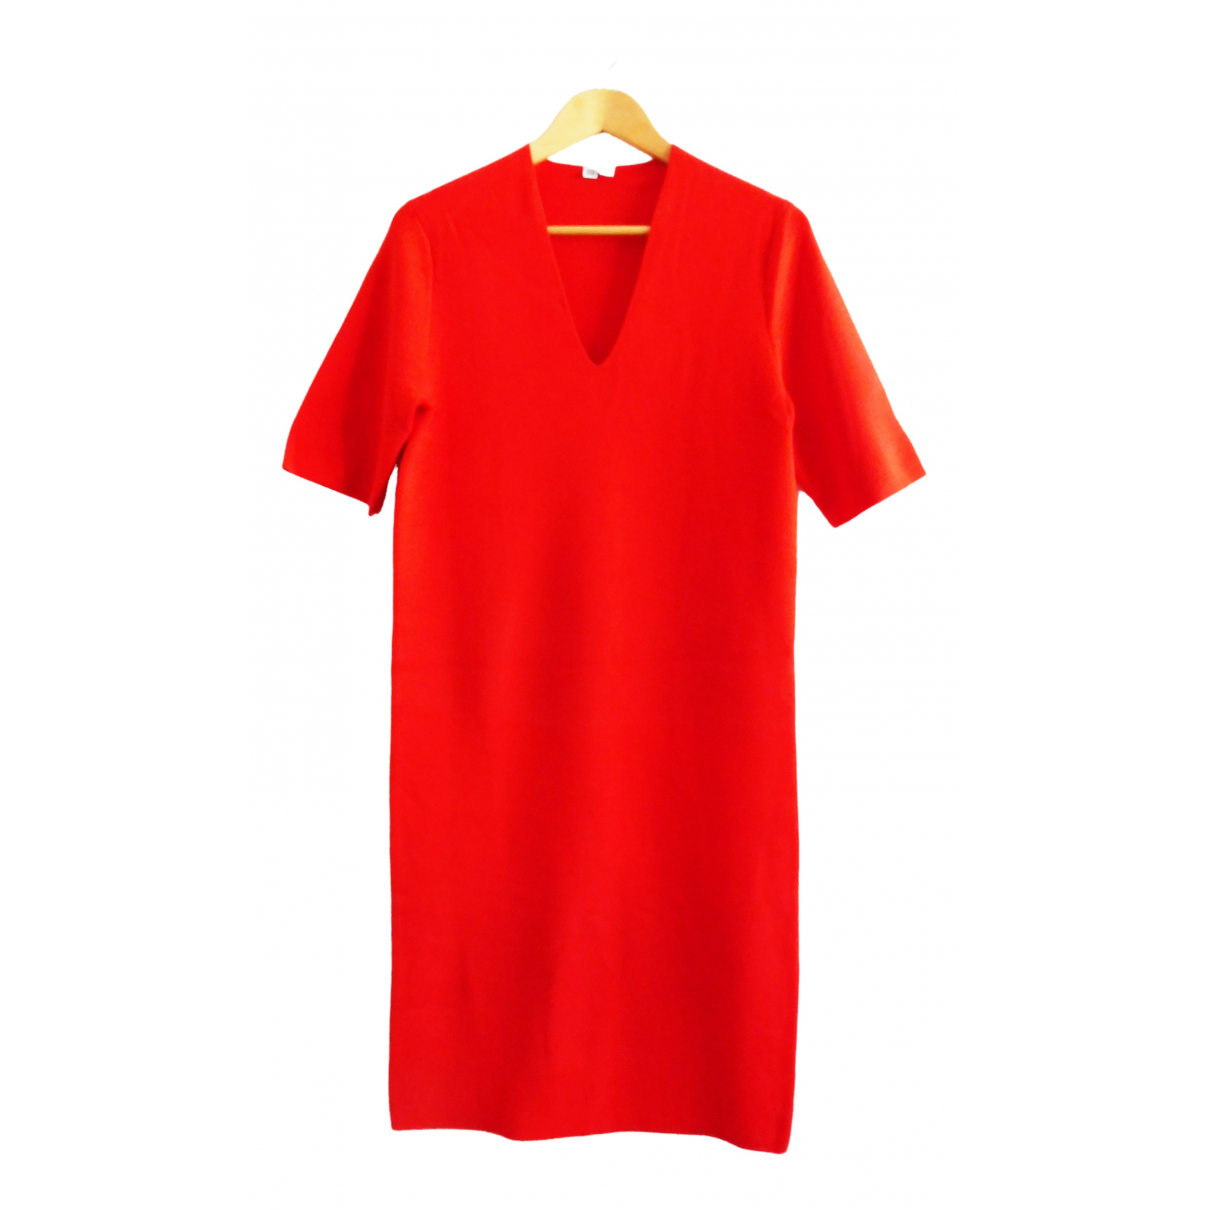 Uniqlo \N Red Cotton dress for Women S International